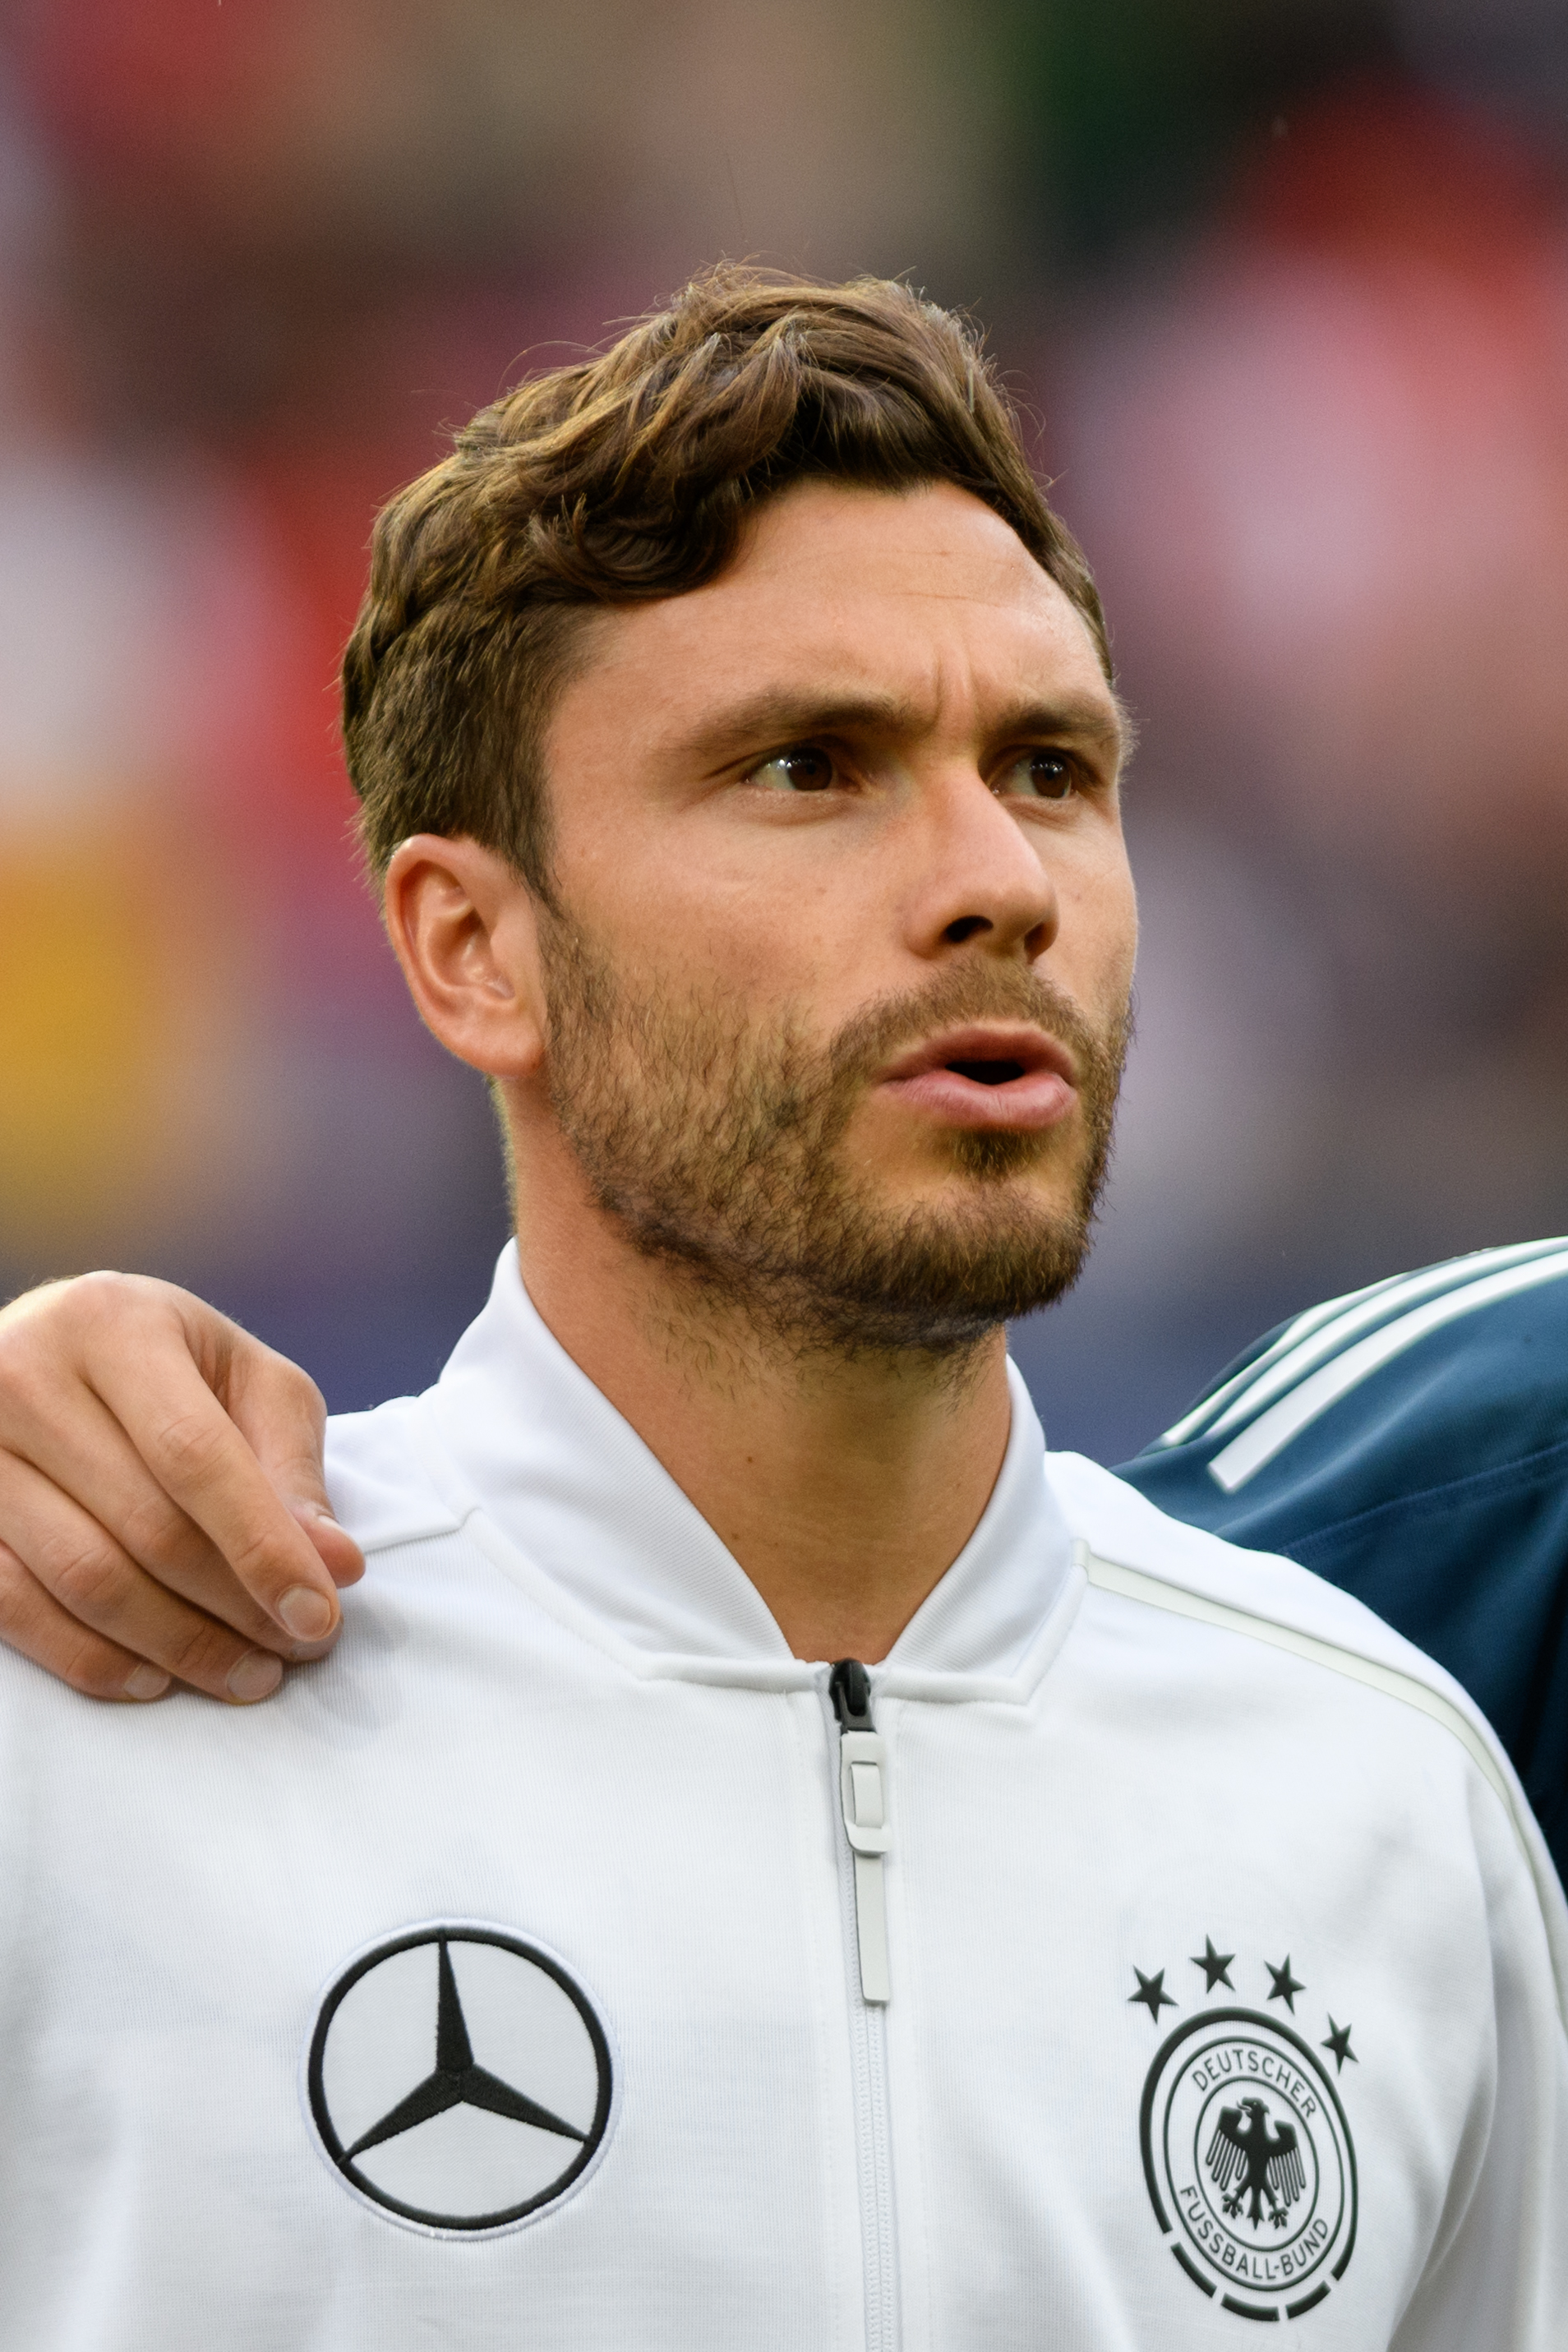 The 28-year old son of father Erhard Hector and mother Monika Hector Jonas Hector in 2018 photo. Jonas Hector earned a 2.5 million dollar salary - leaving the net worth at  million in 2018